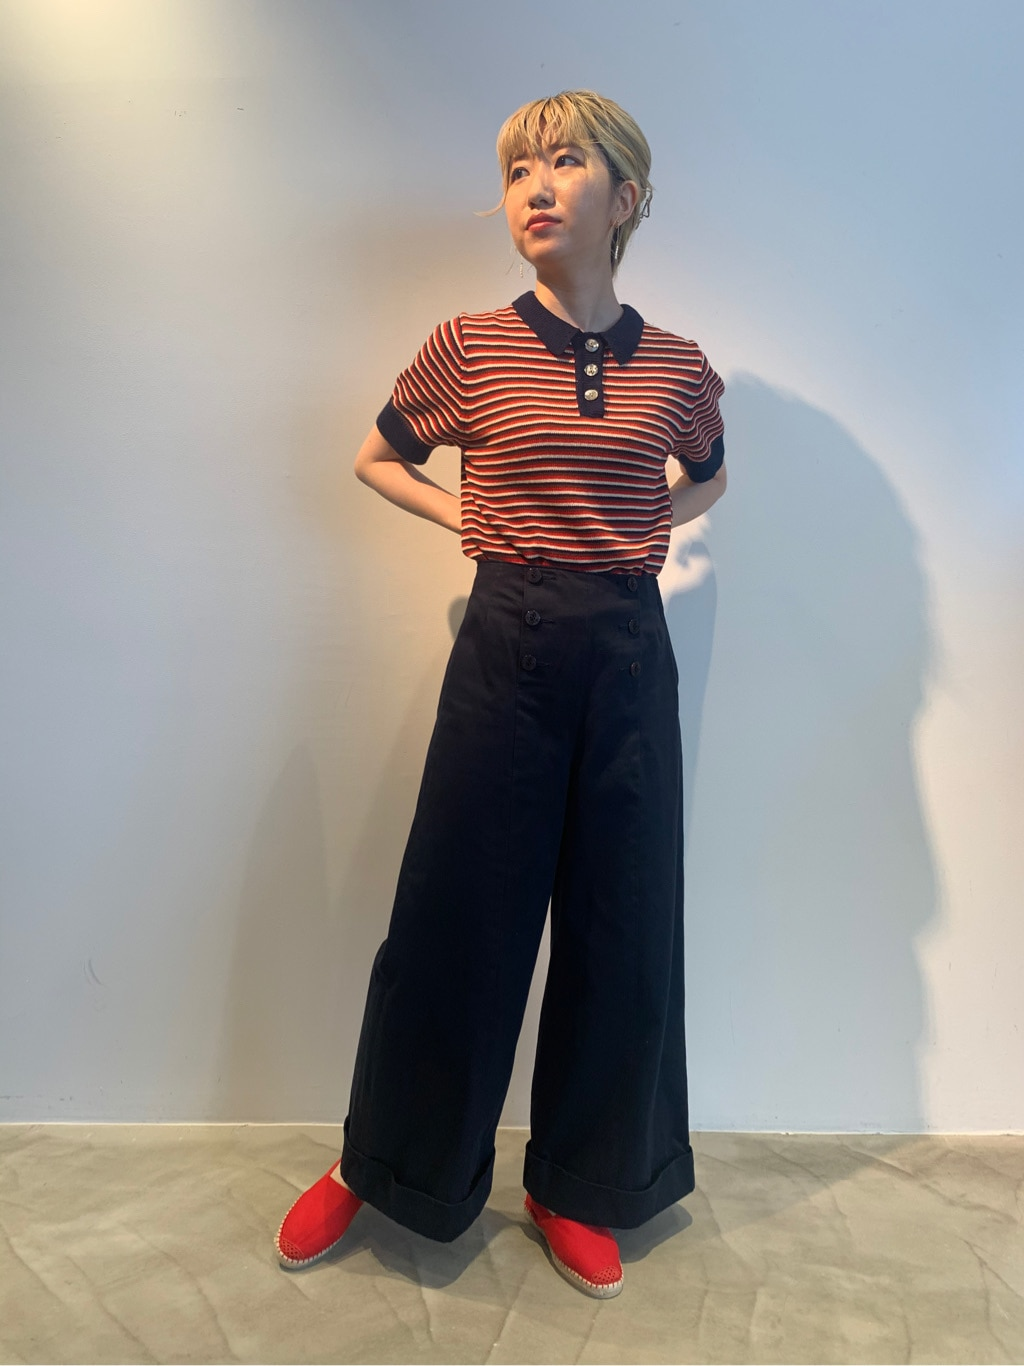 Dot and Stripes CHILD WOMAN ラフォーレ原宿 身長:160cm 2020.08.05